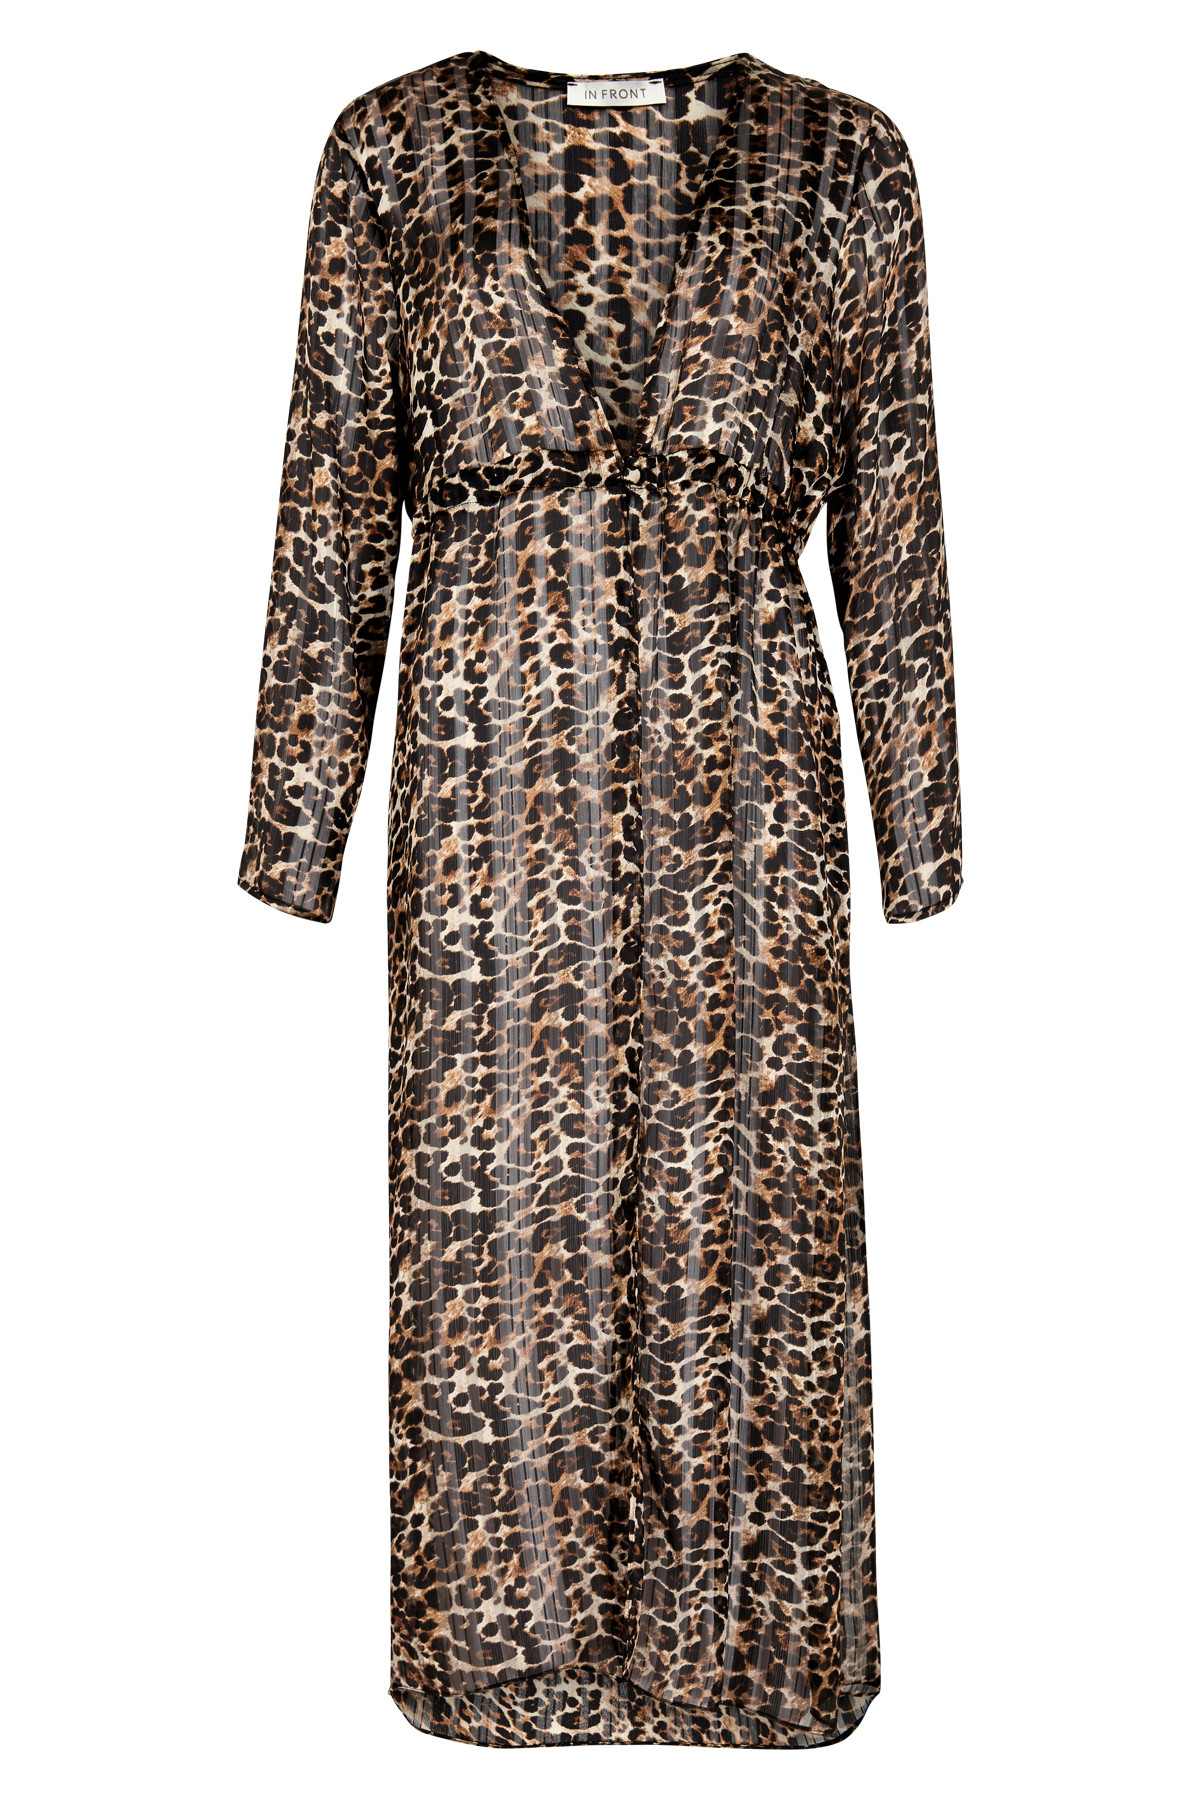 Image of   IN FRONT ANNA LANG LEOPARD CARIGAN 13056 (Dark Coffee 809, L)